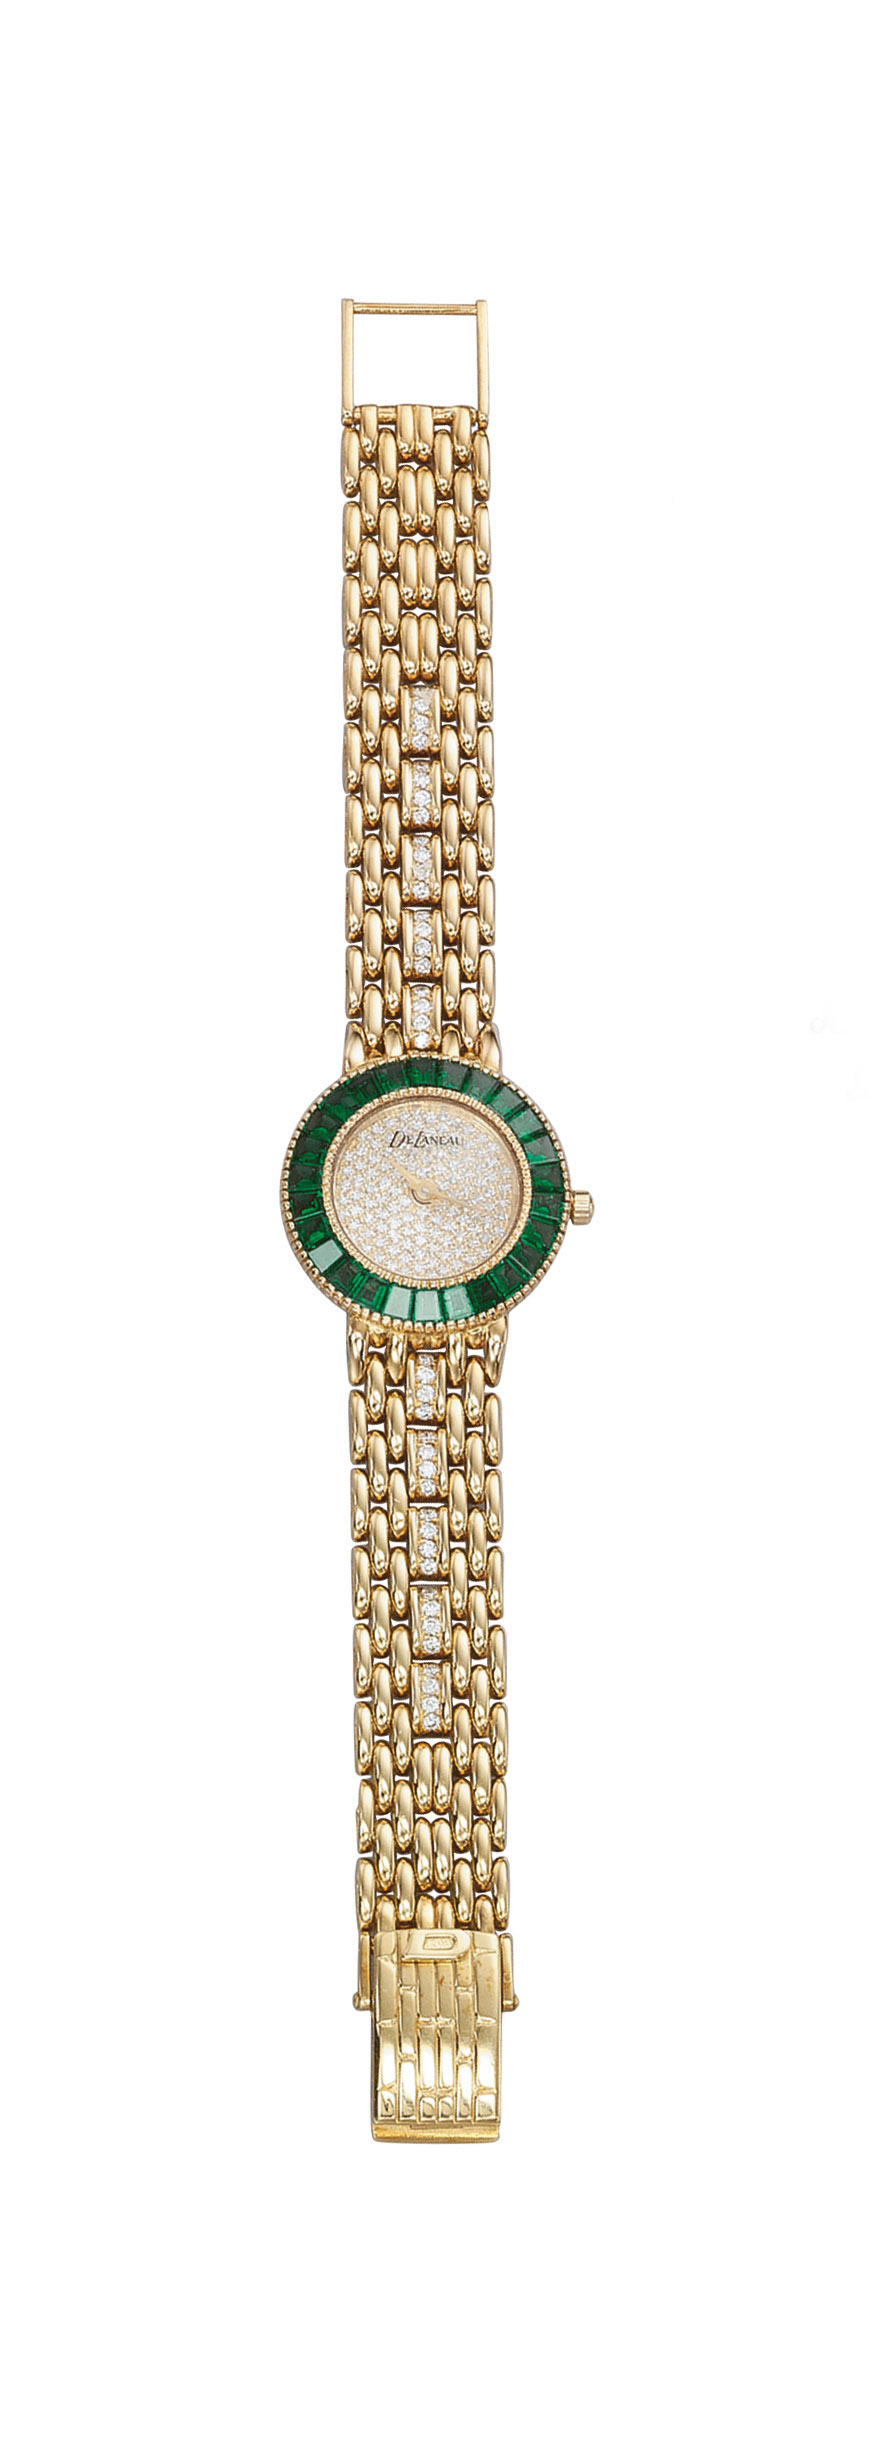 A LADY'S EMERALD AND DIAMOND WRISTWATCH, BY DELANEAU